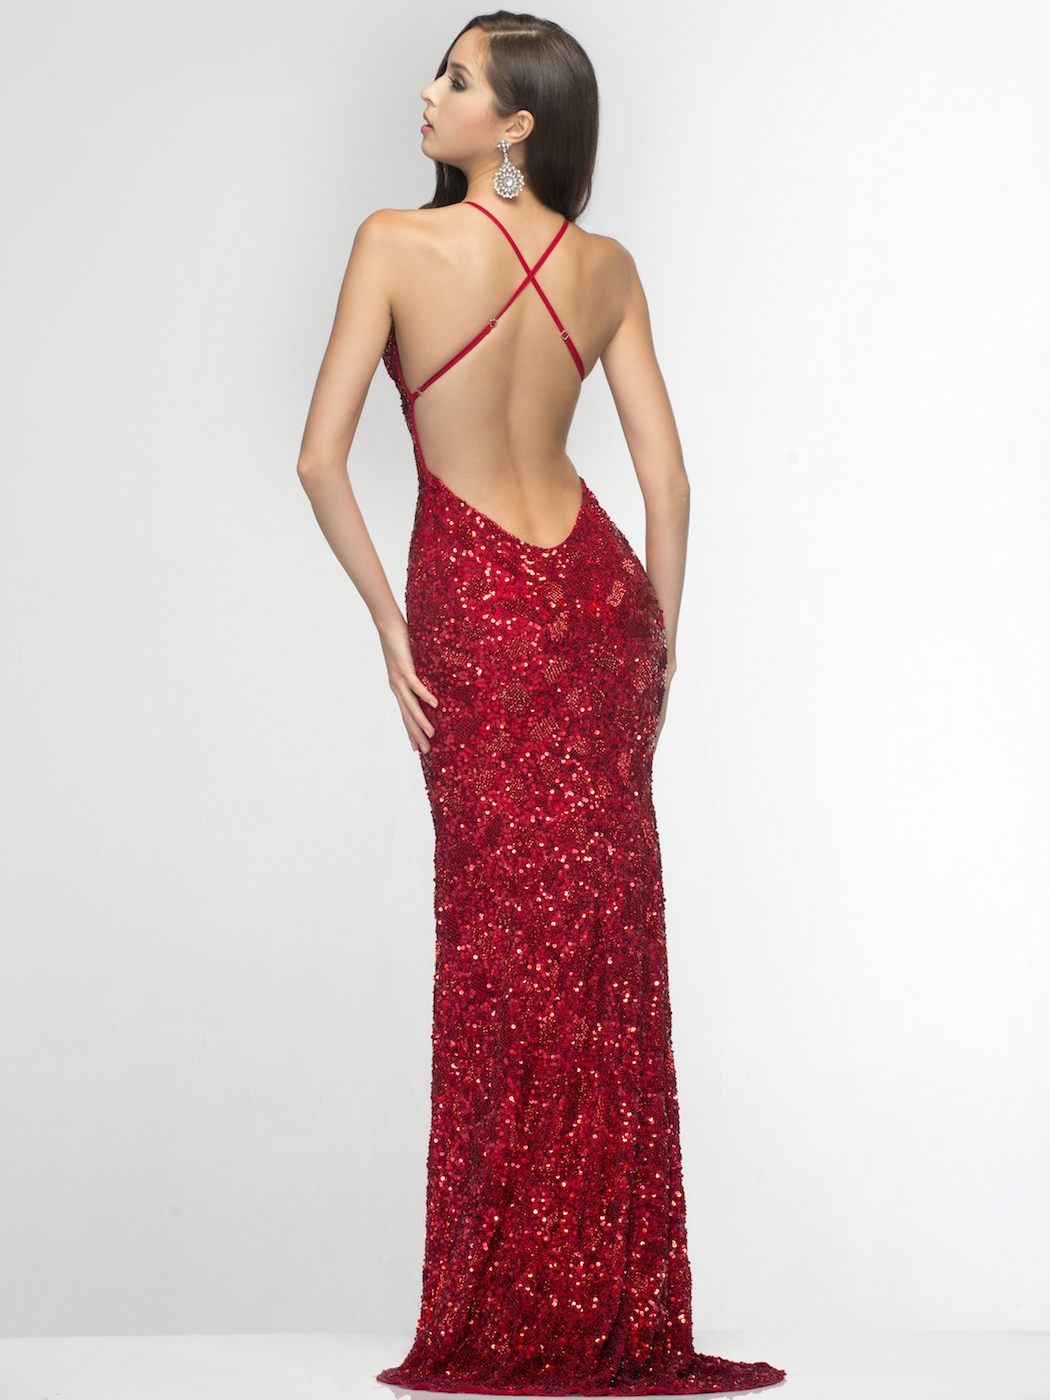 Plunge Bead and Sequin Prom Dress by Scala | Sung Boutique L.A.